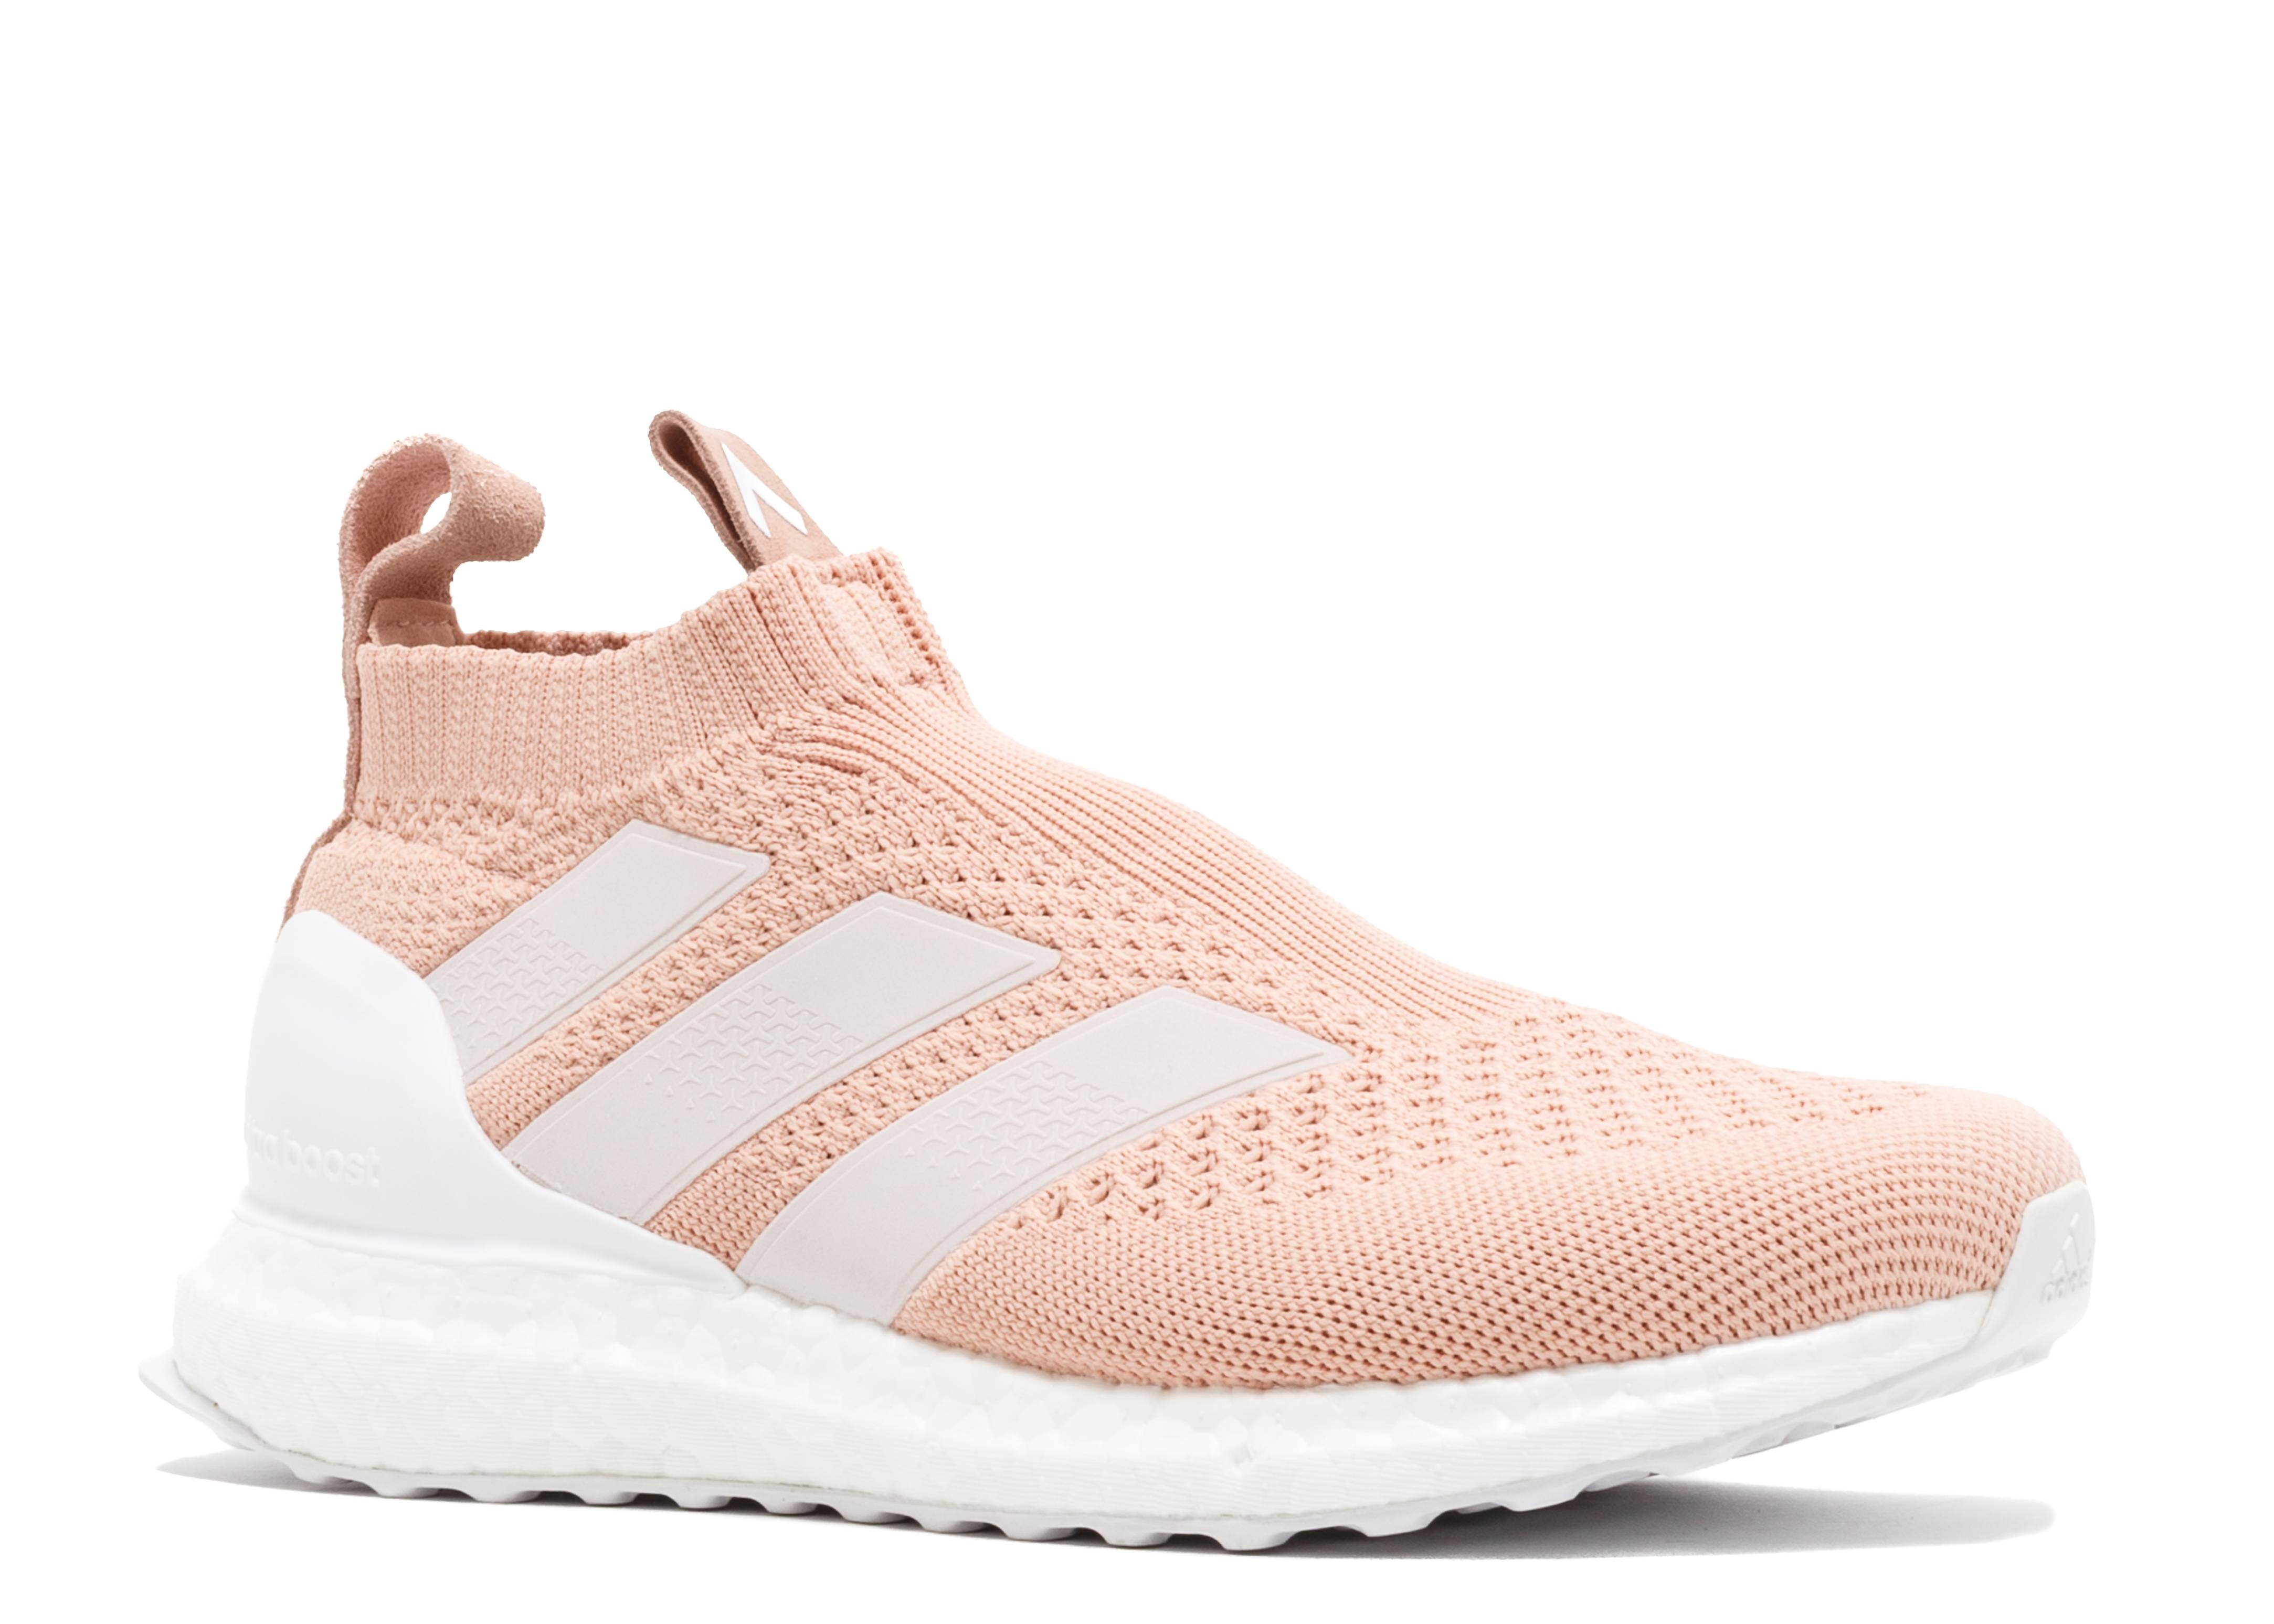 136f9d6a77d Ace 16 Purecontrol Ultra Boost Kith Flamingos - 1